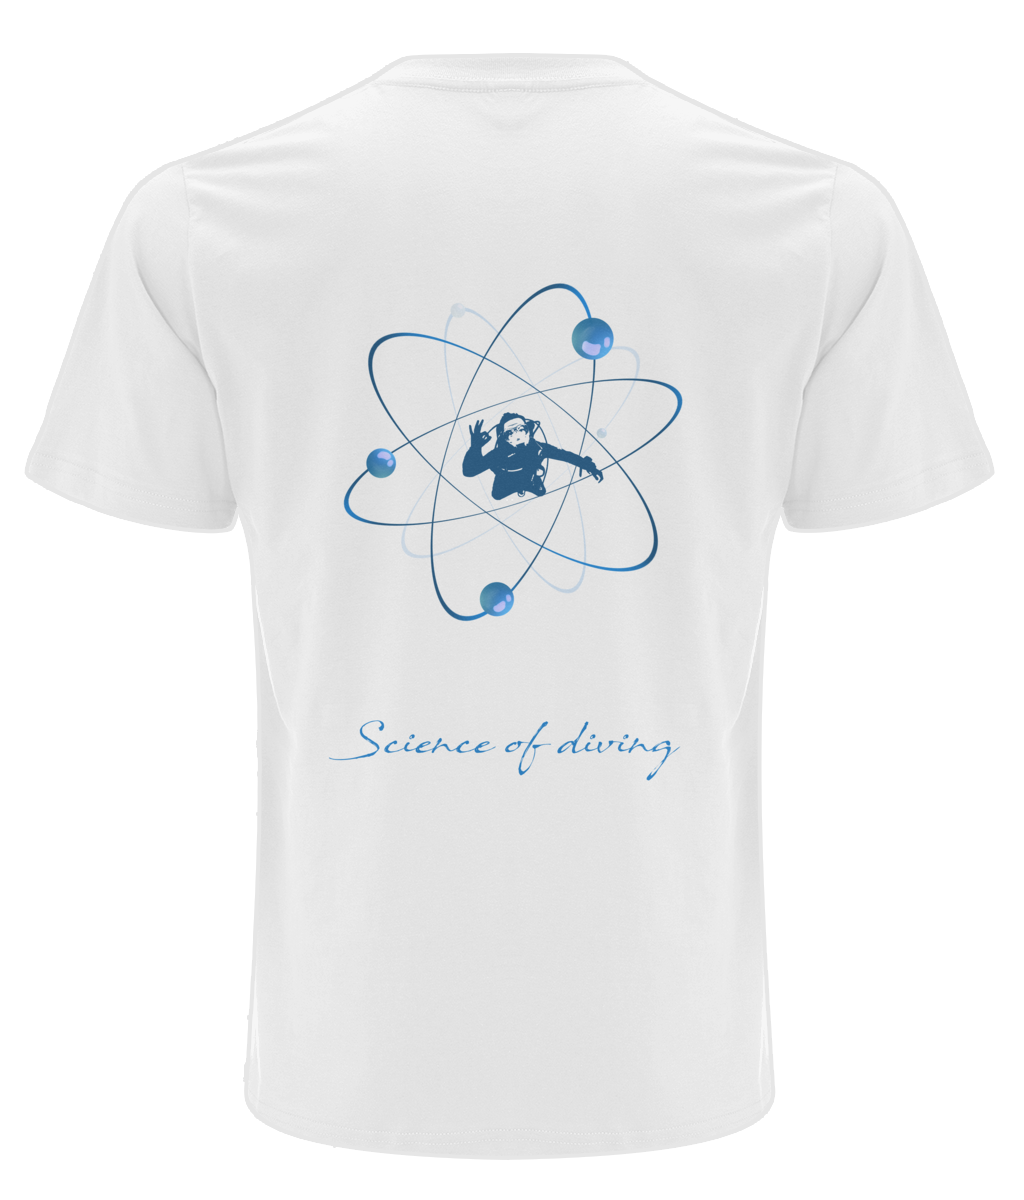 Science of diving - Clothing - [variant_title] - 100% cotton - Banshy